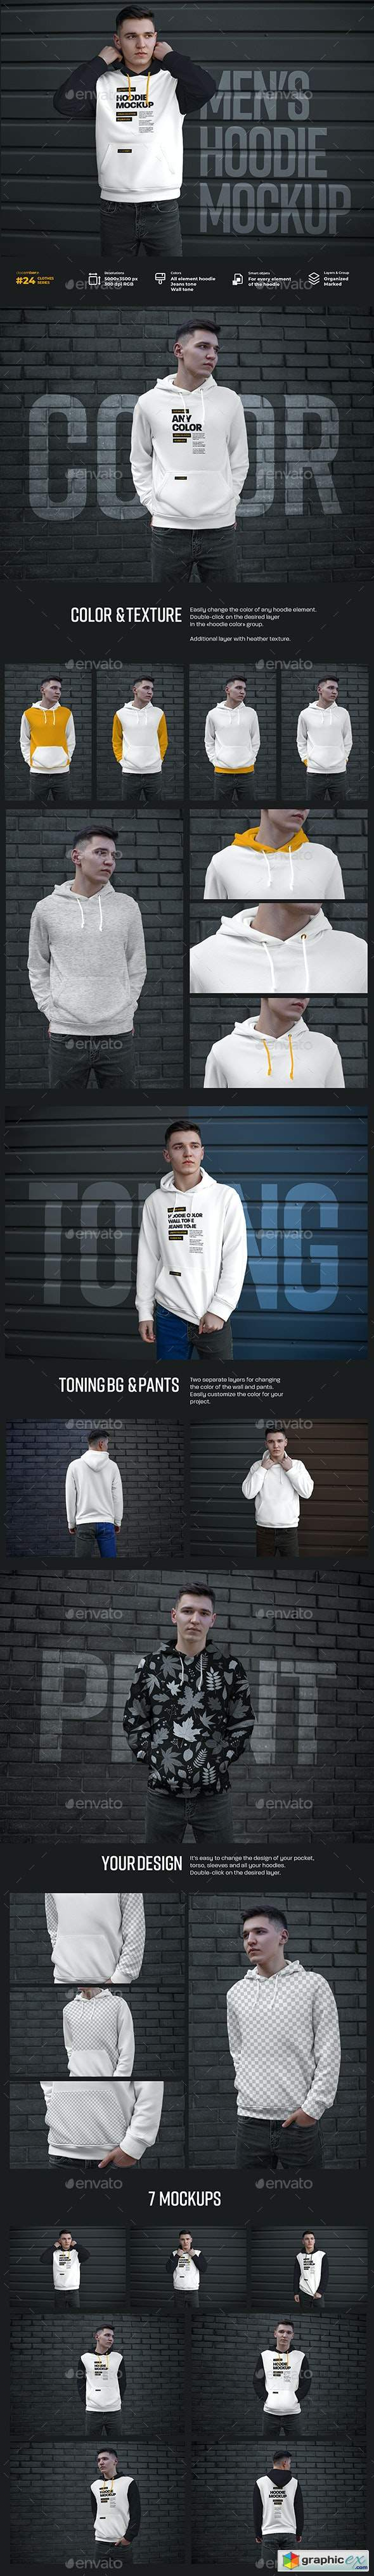 7 Mockups Hoodie on the Man. Urban Style